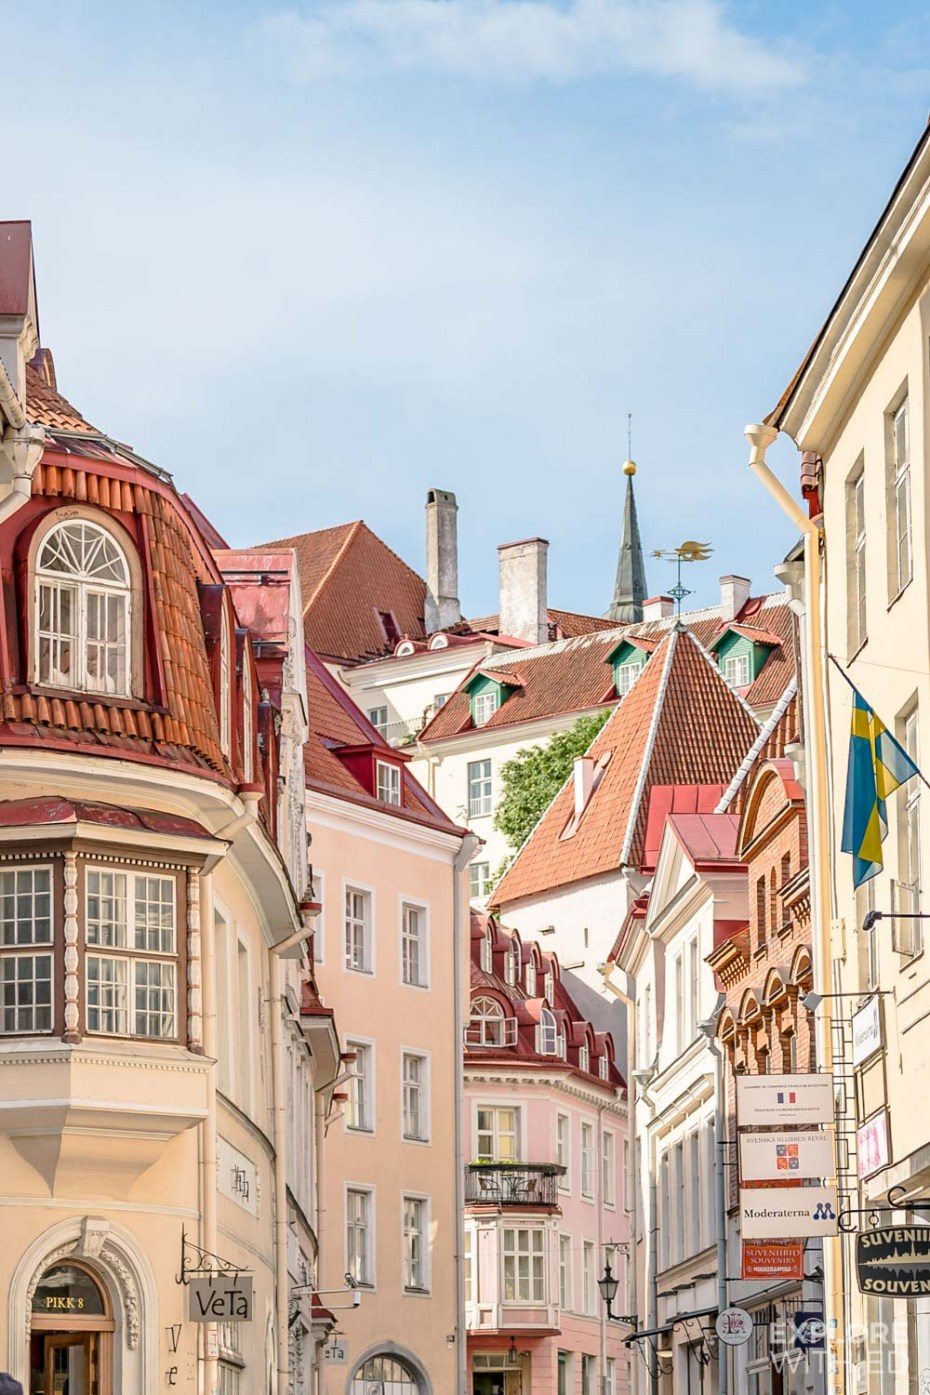 The magical streets of Tallinn's Old Town